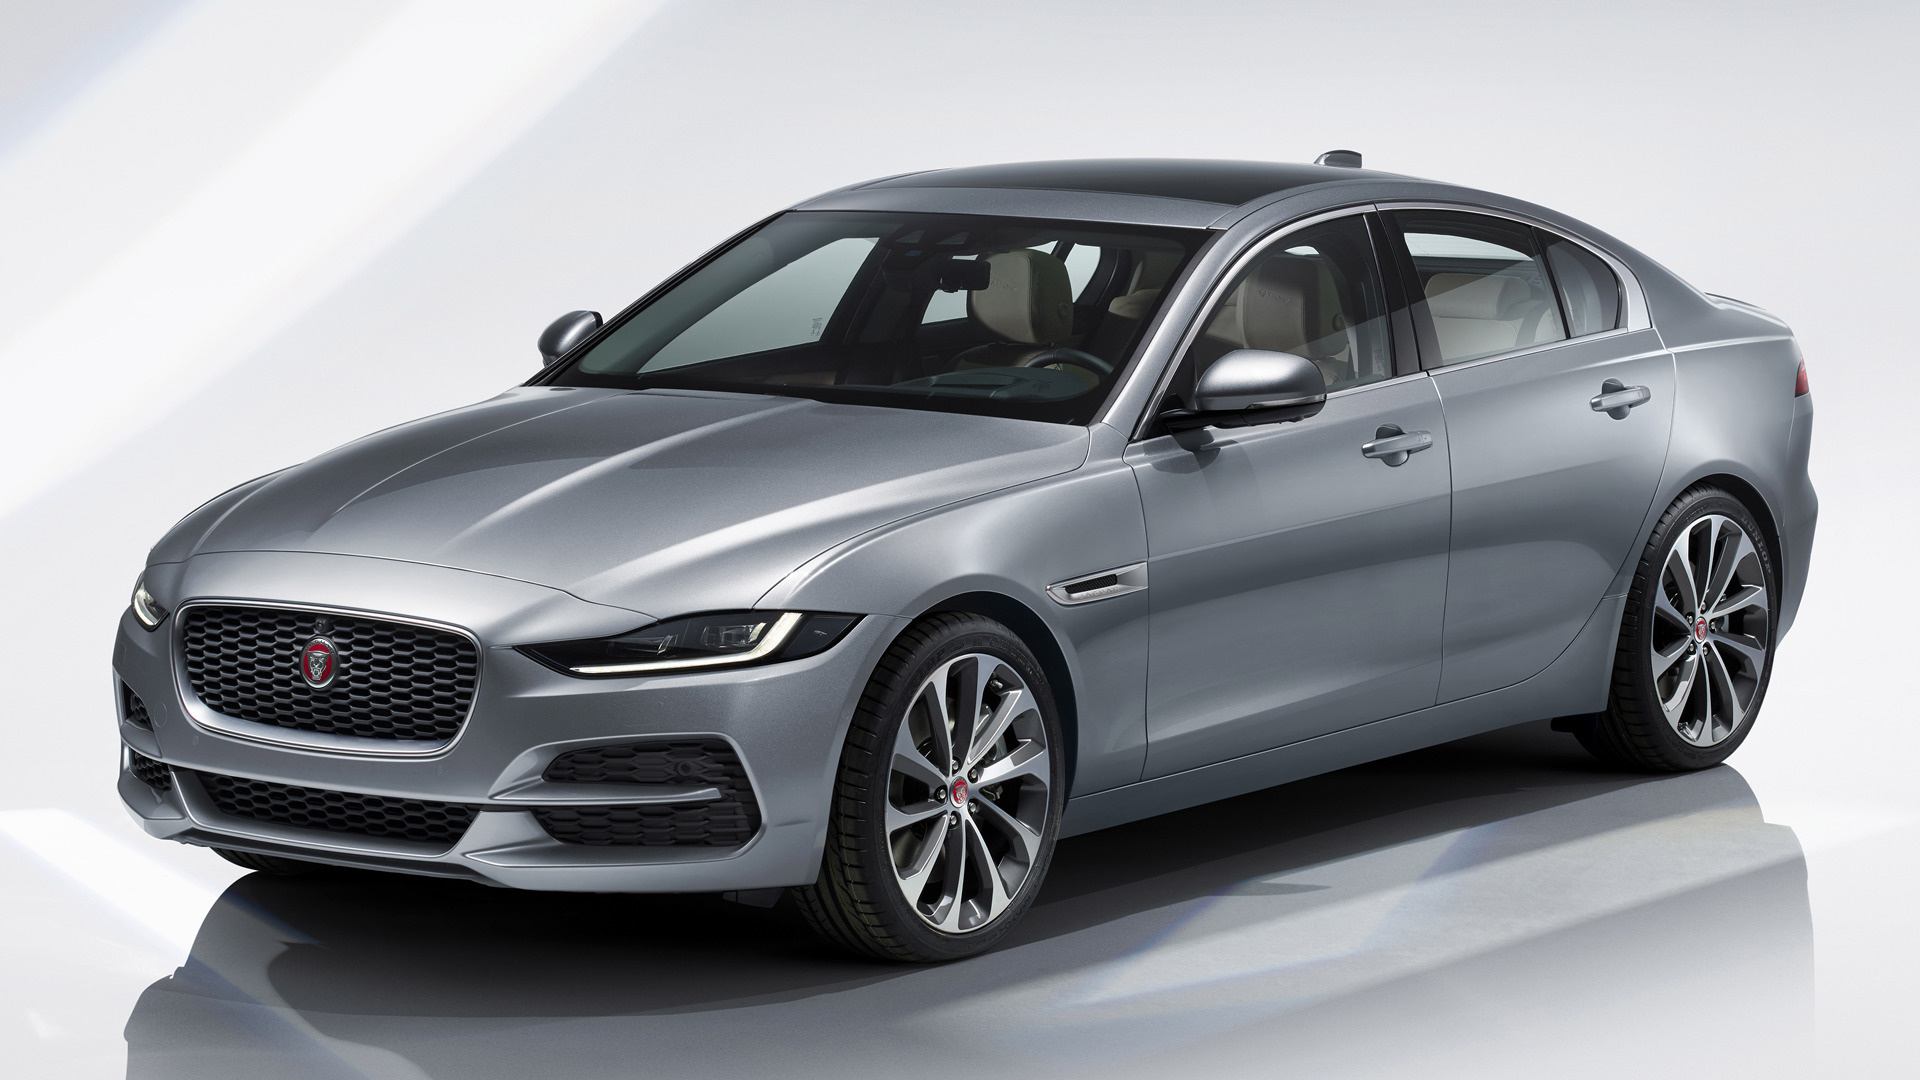 2019 Jaguar Xe Wallpapers And Hd Images Car Pixel